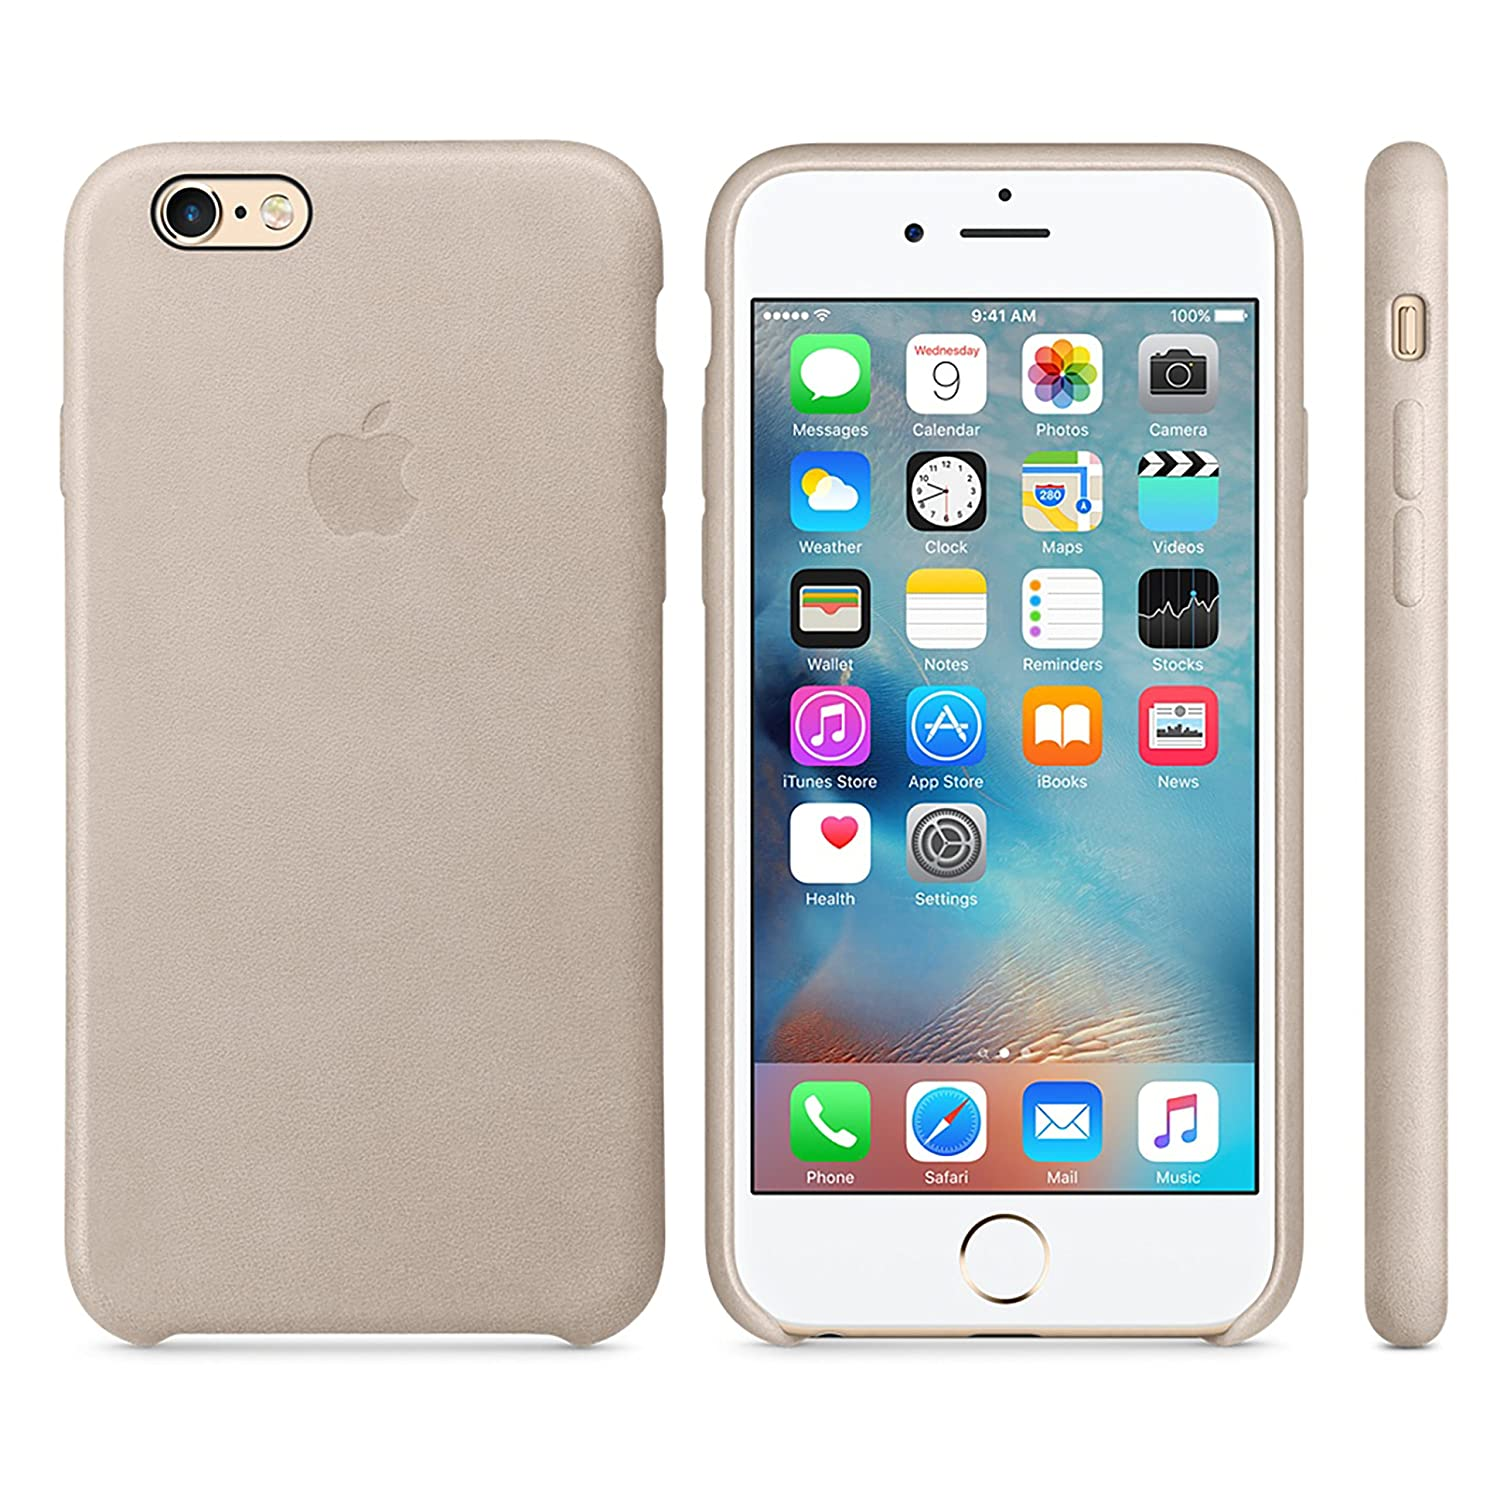 apple cases. amazon.com: apple oem leather case - for iphone 6 plus / 6s rose gray (new): cell phones \u0026 accessories cases